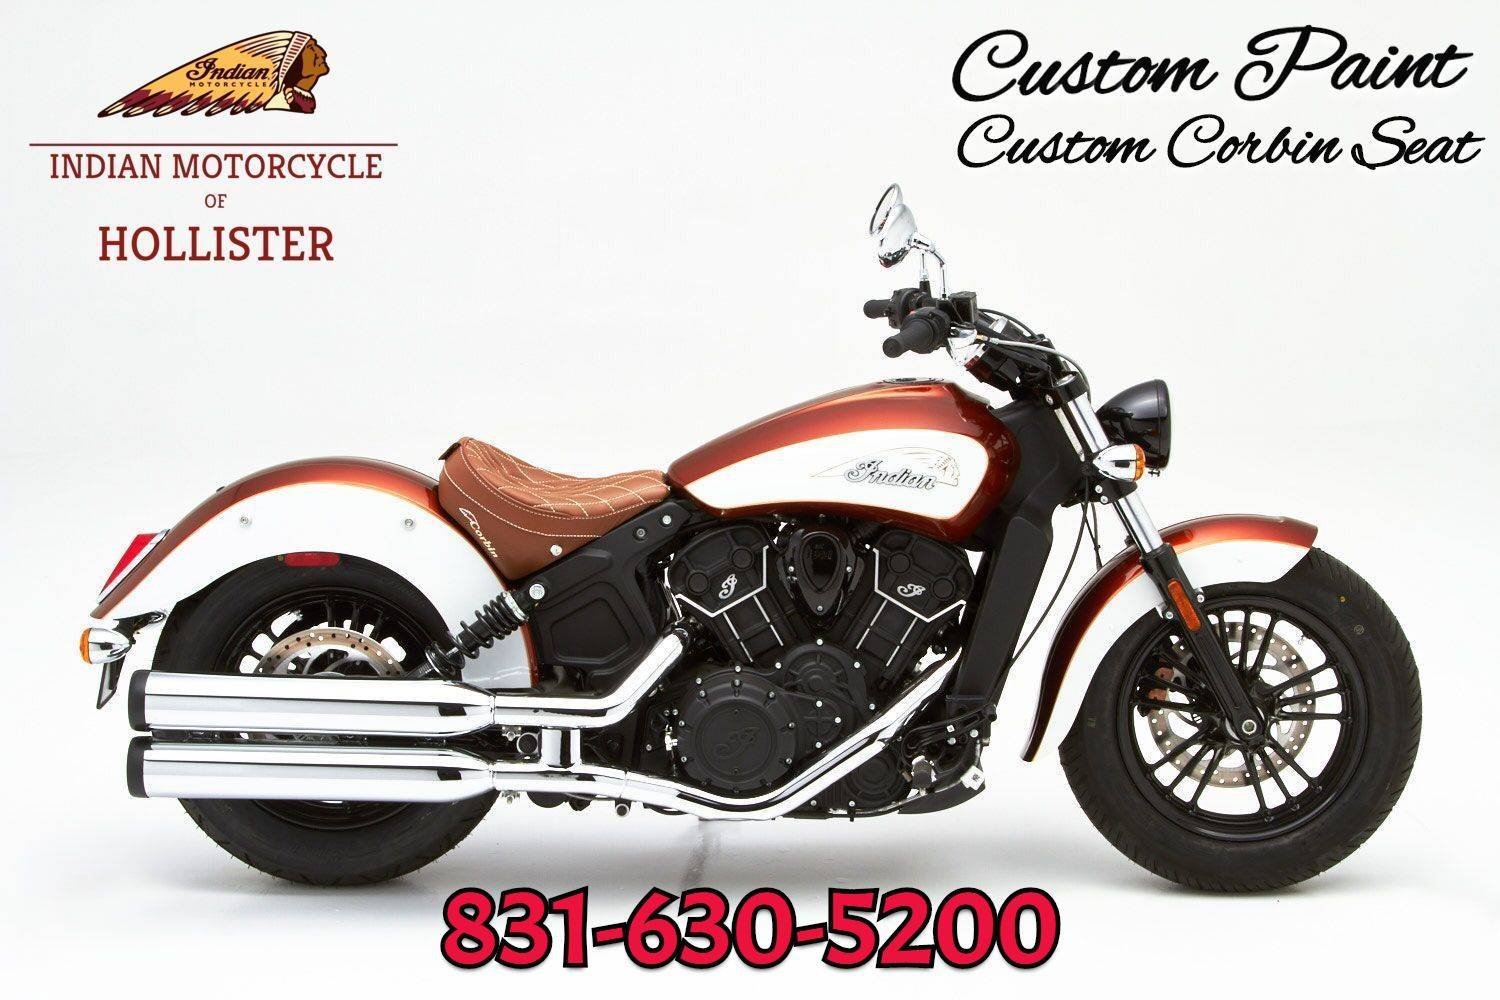 2018 Indian Scout Sixty ABS 1